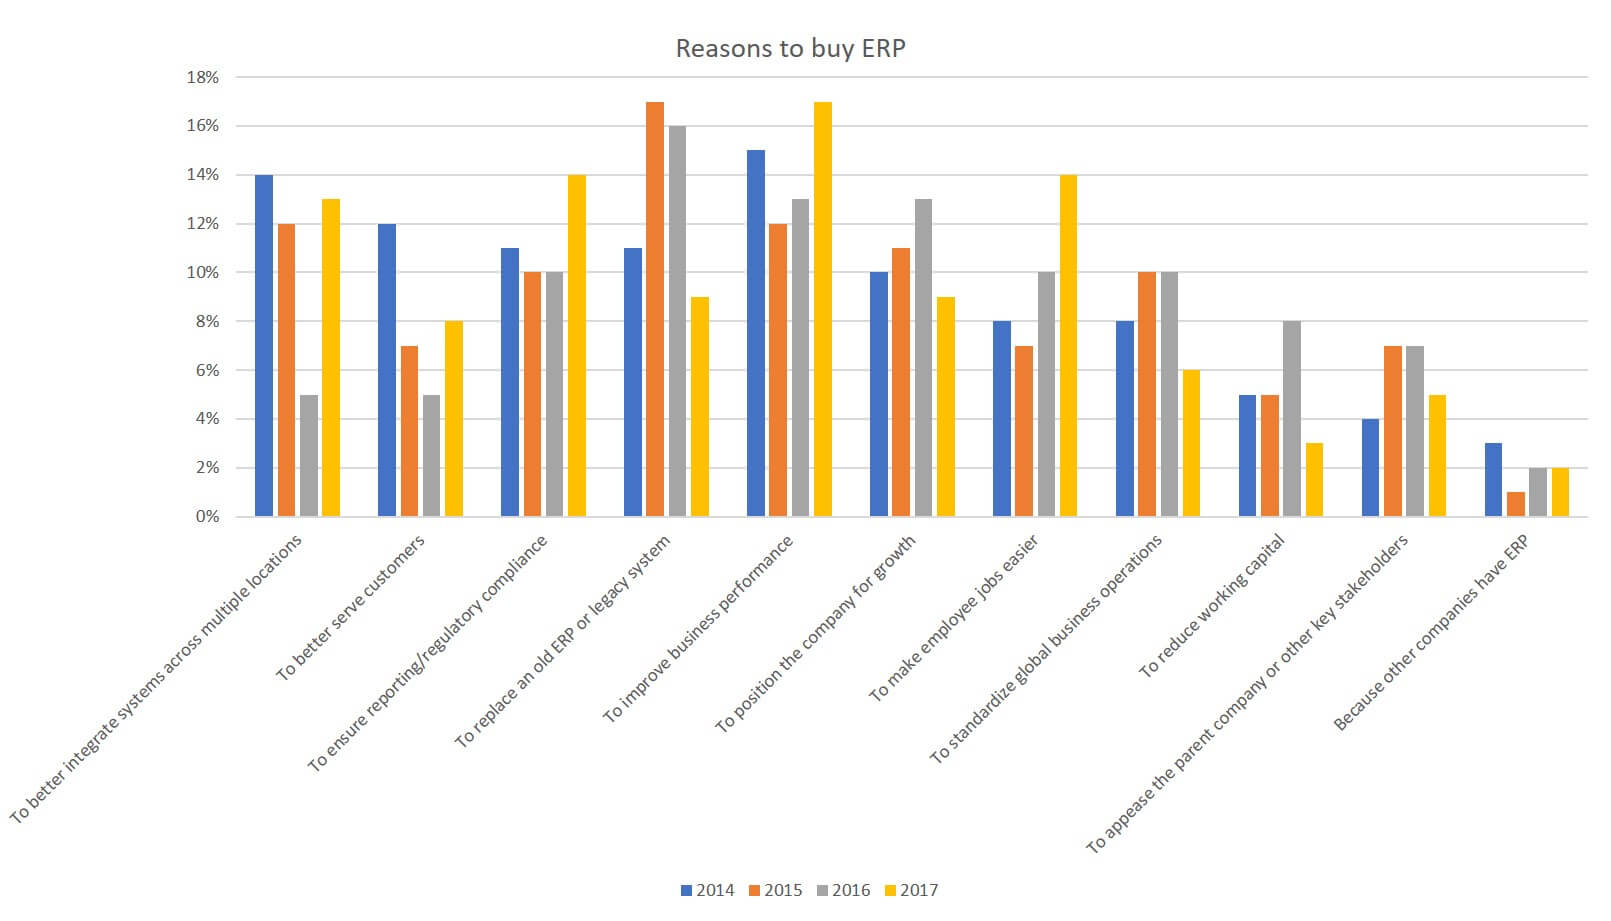 Reasons to buy ERP graph